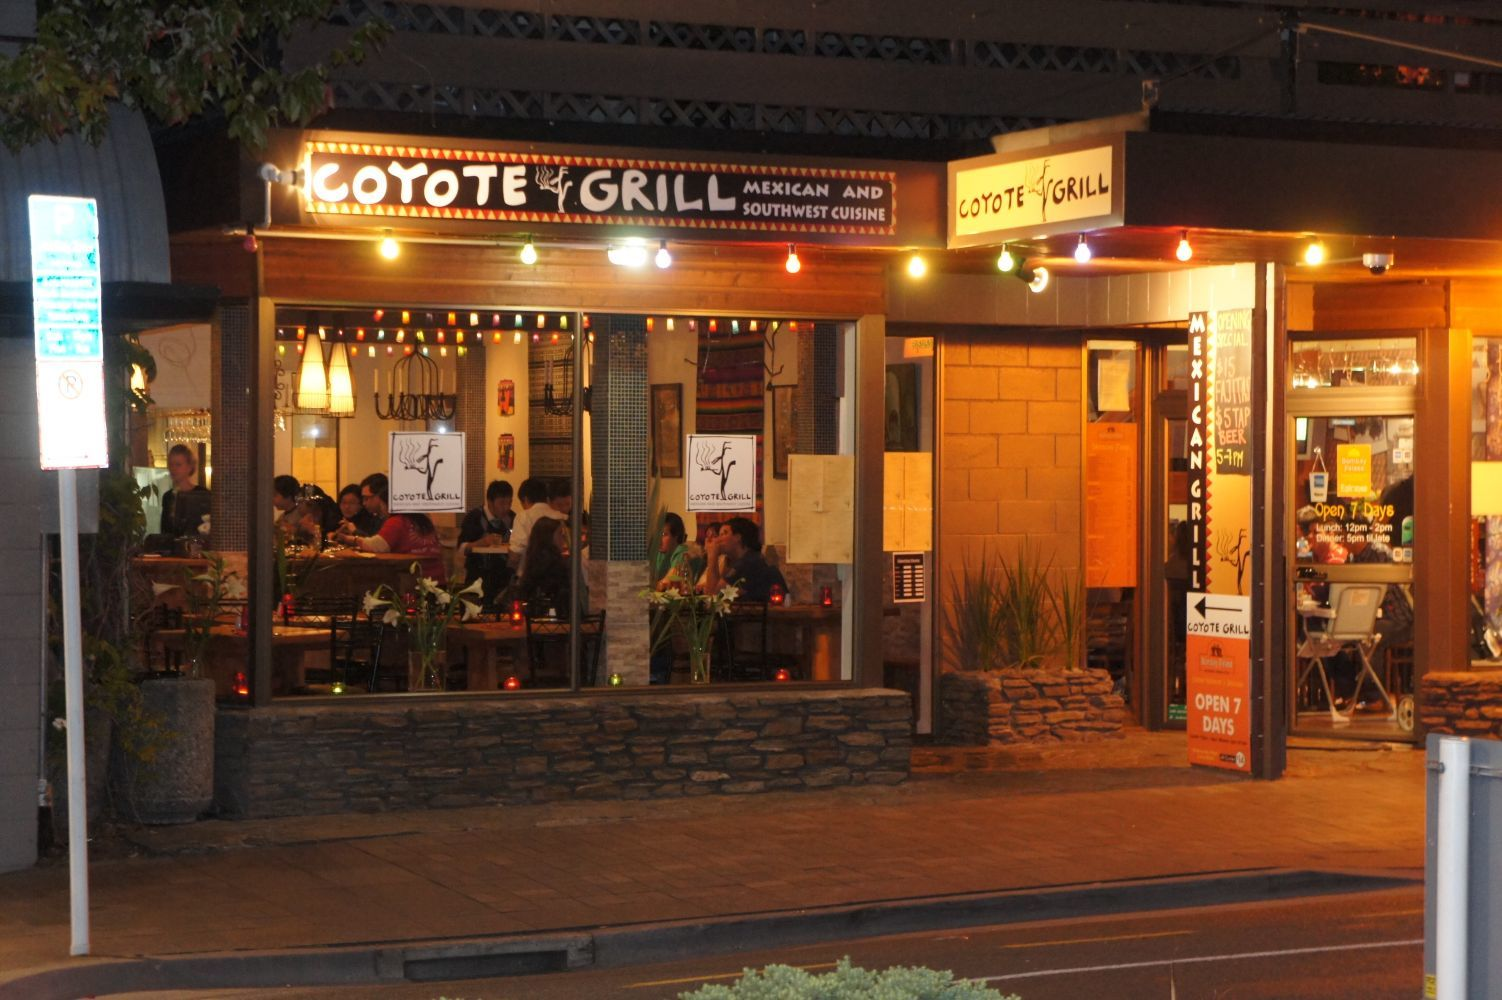 Front View of Coyote Grill